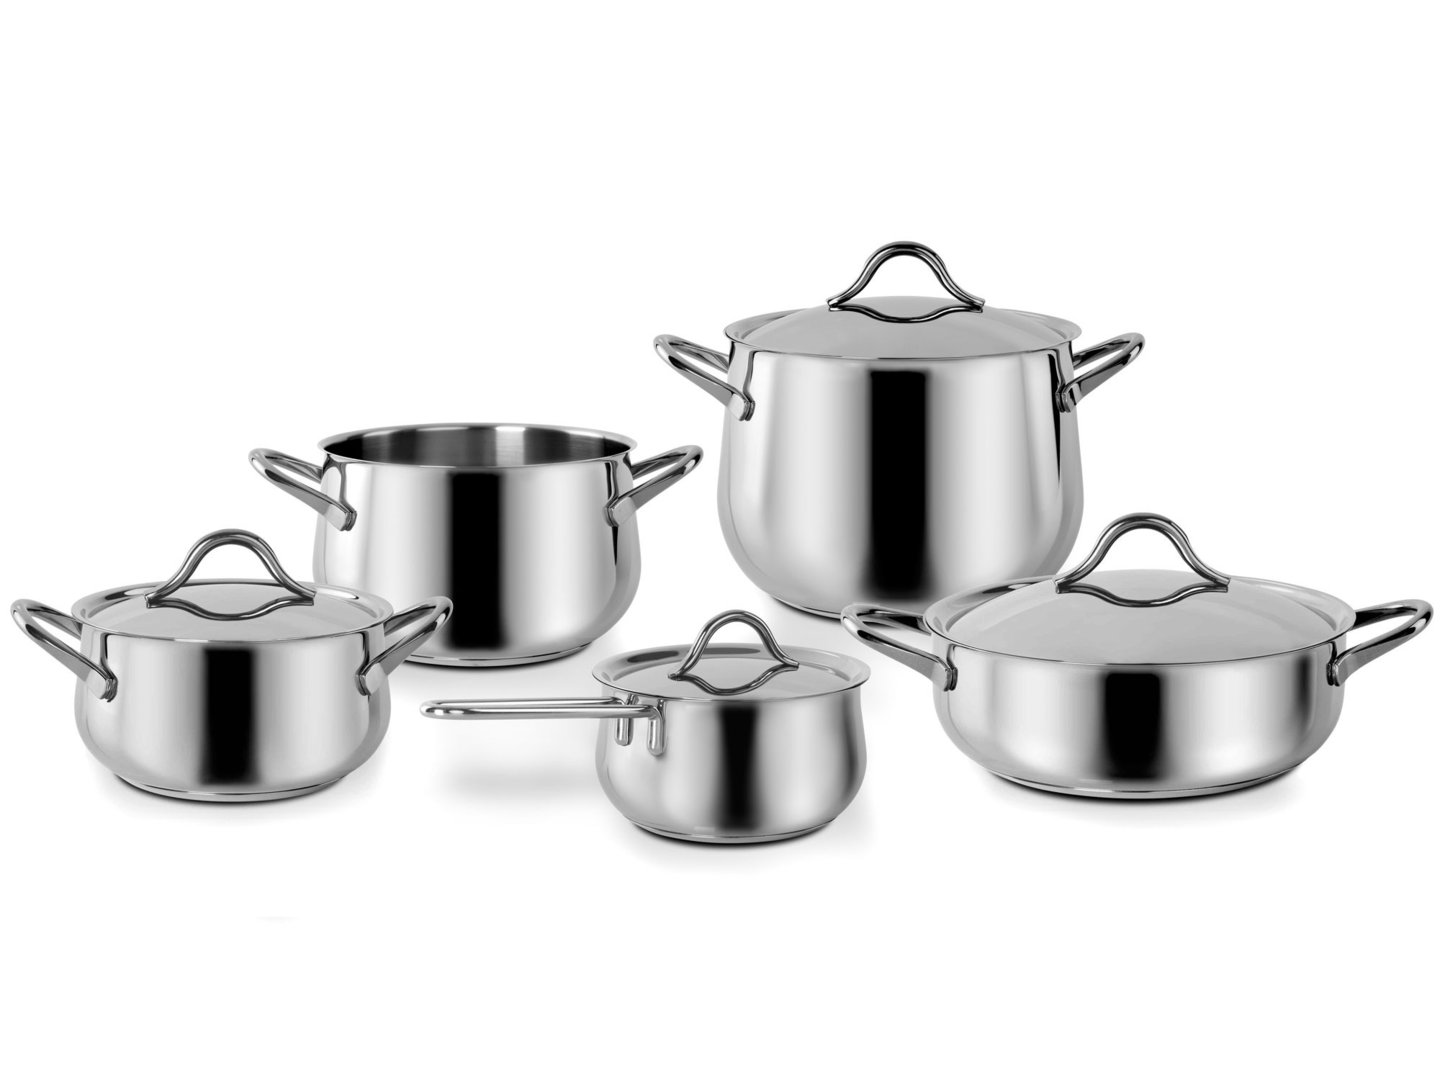 BARAZZONI stainless steel cookware set SAPORE ITALIANO 9 pieces